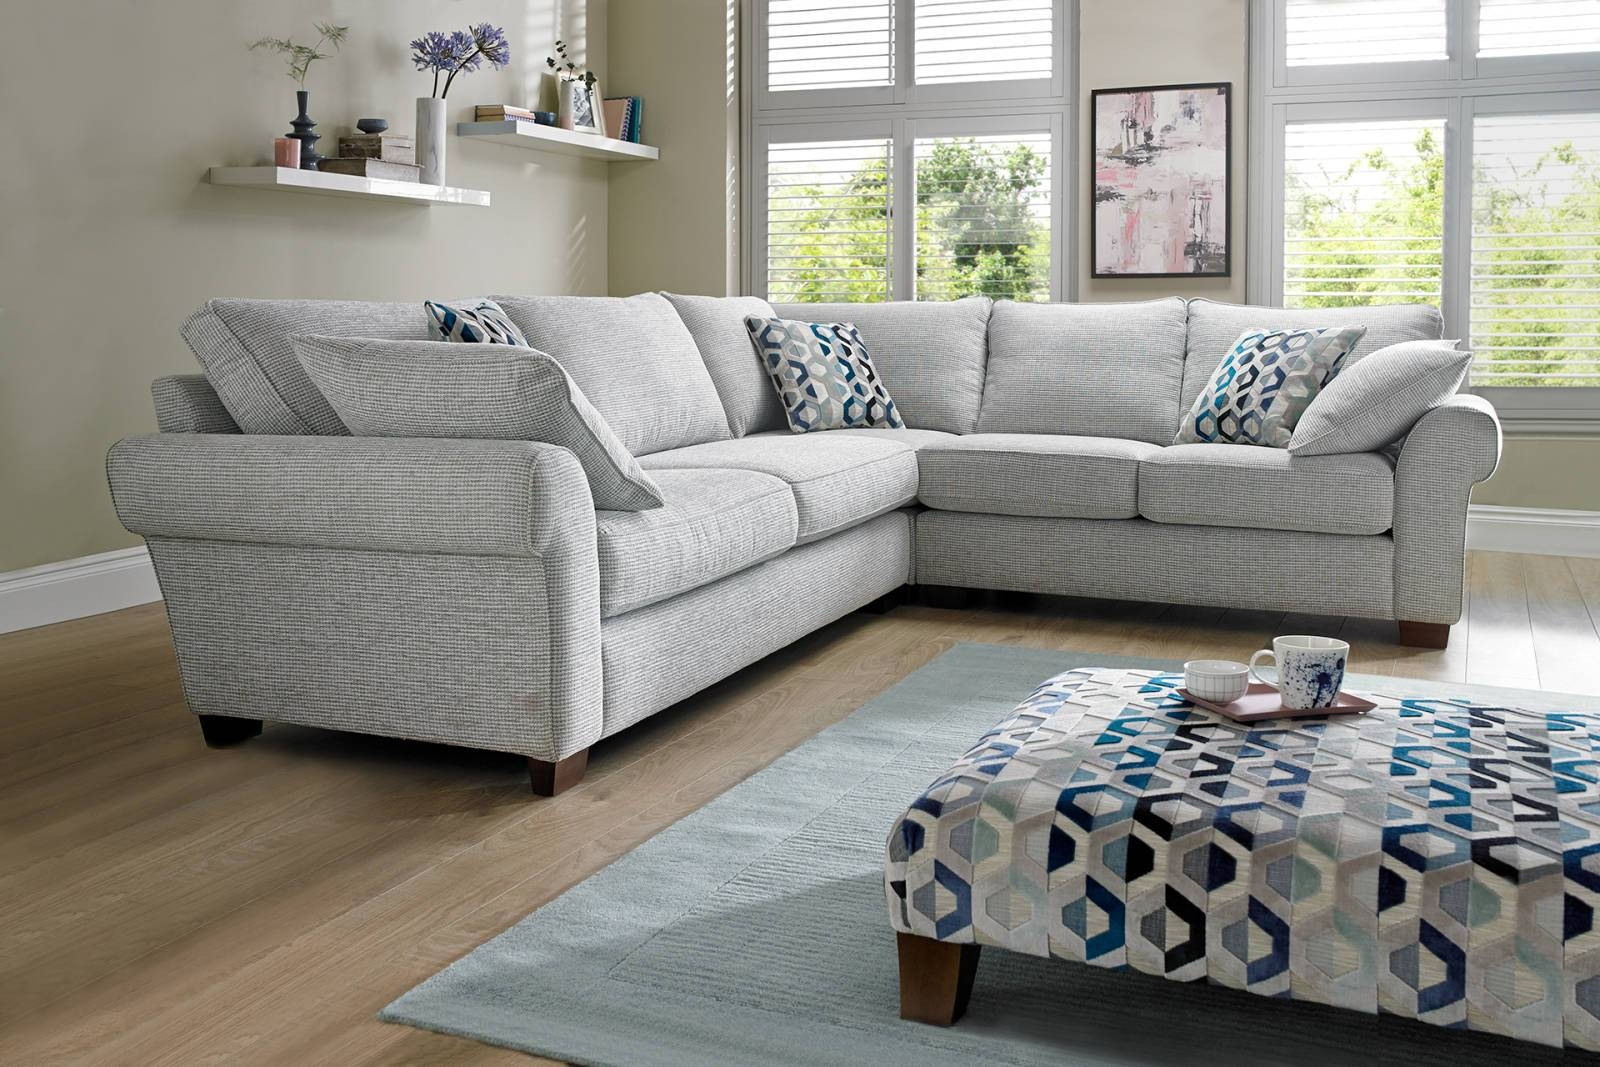 Corner Sofas In Leather, Fabric | Sofology in Leather Corner Sofas (Image 9 of 30)